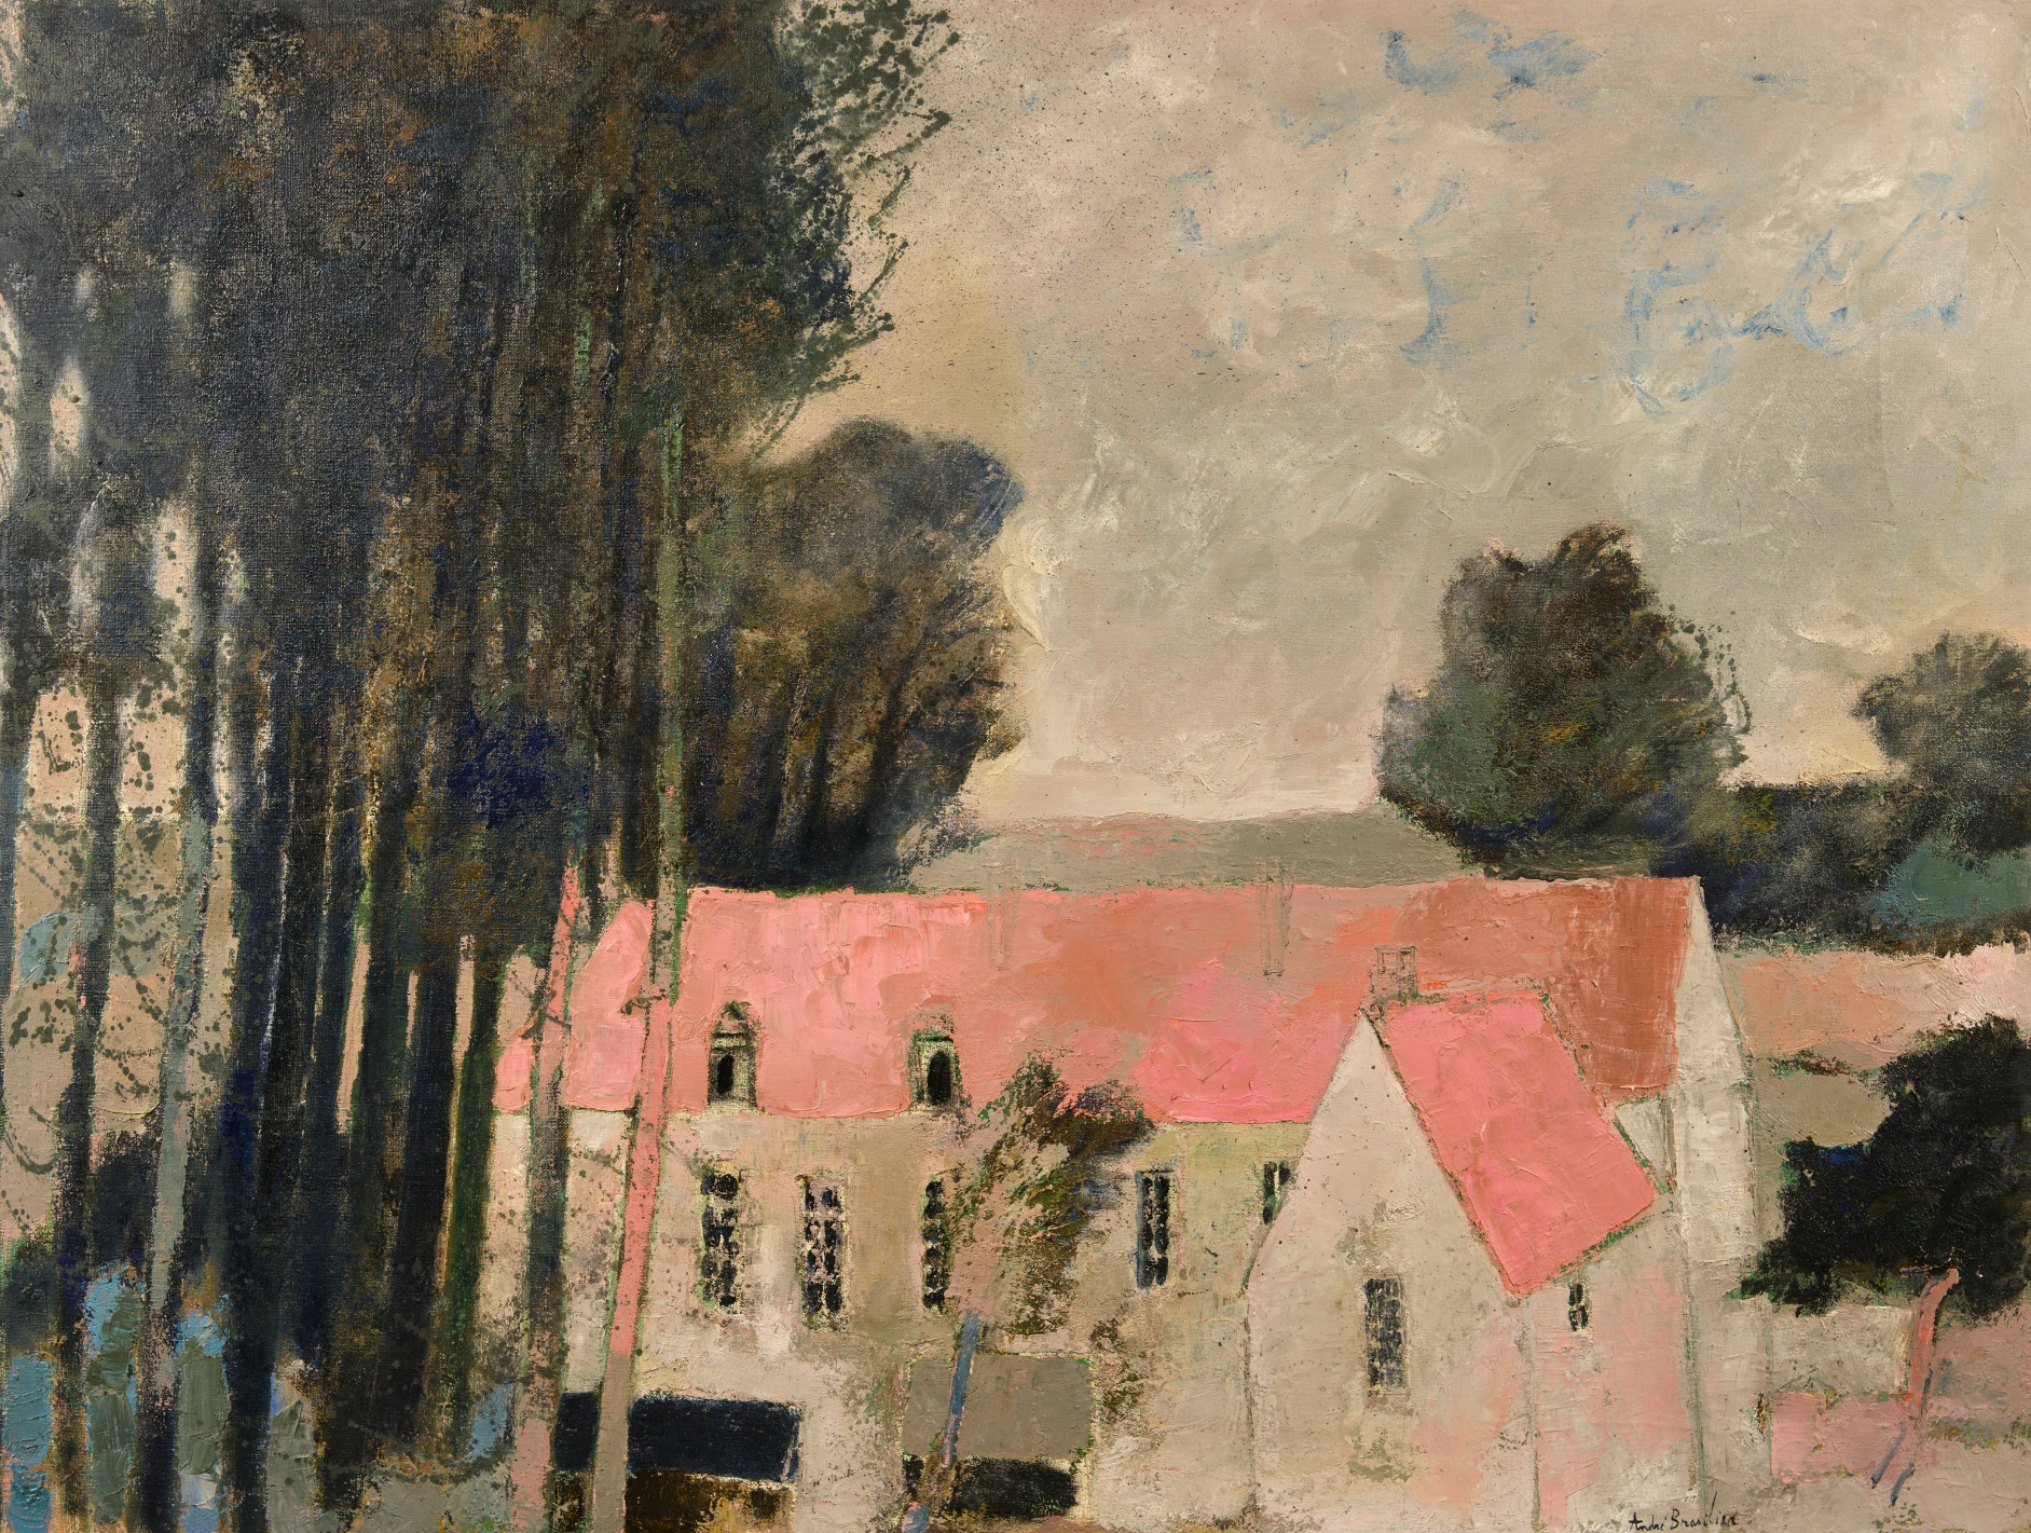 Art Gallery Cotswolds - Trinity house Paintings Brasilier